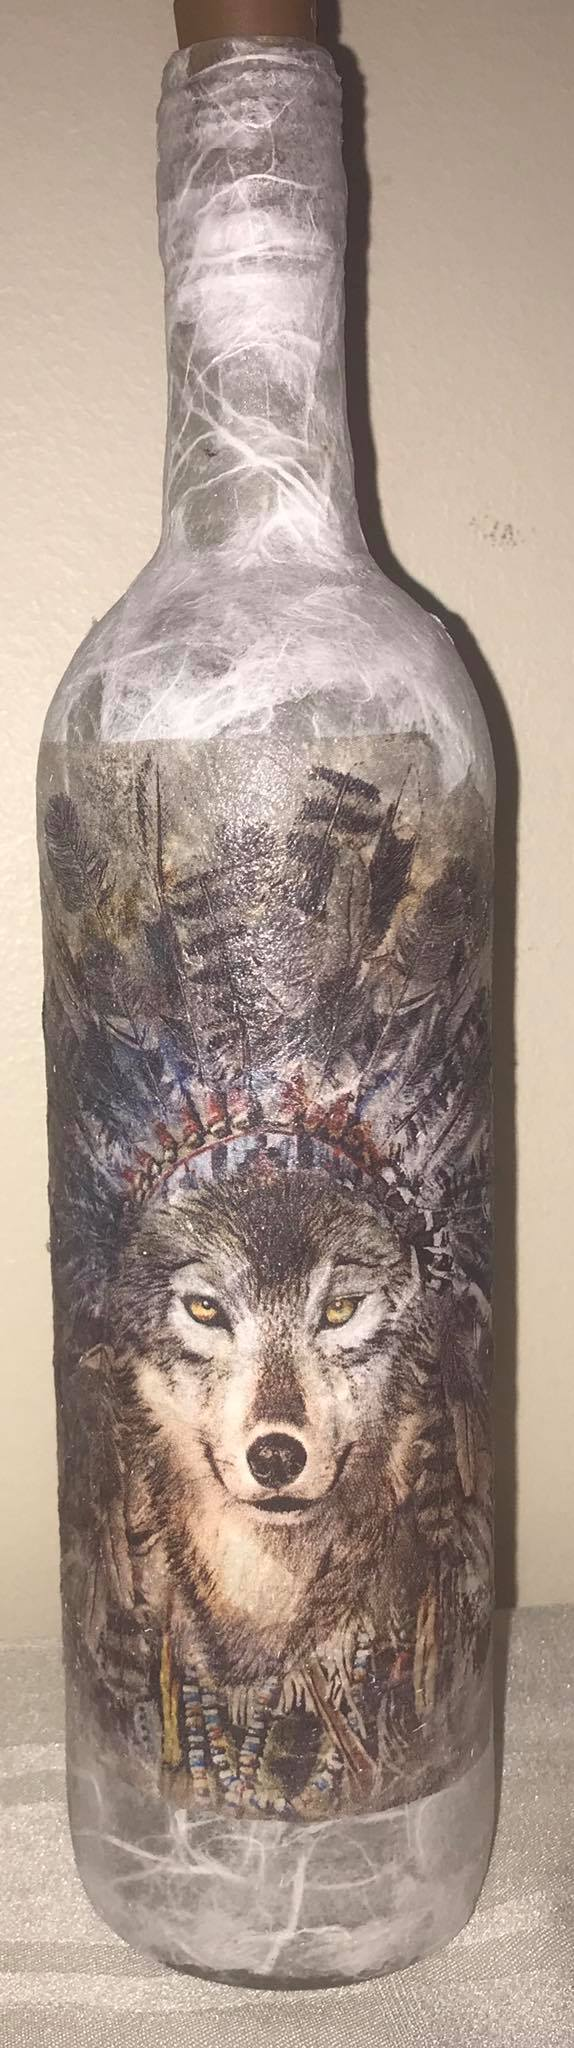 Wolf Light Up Bottle